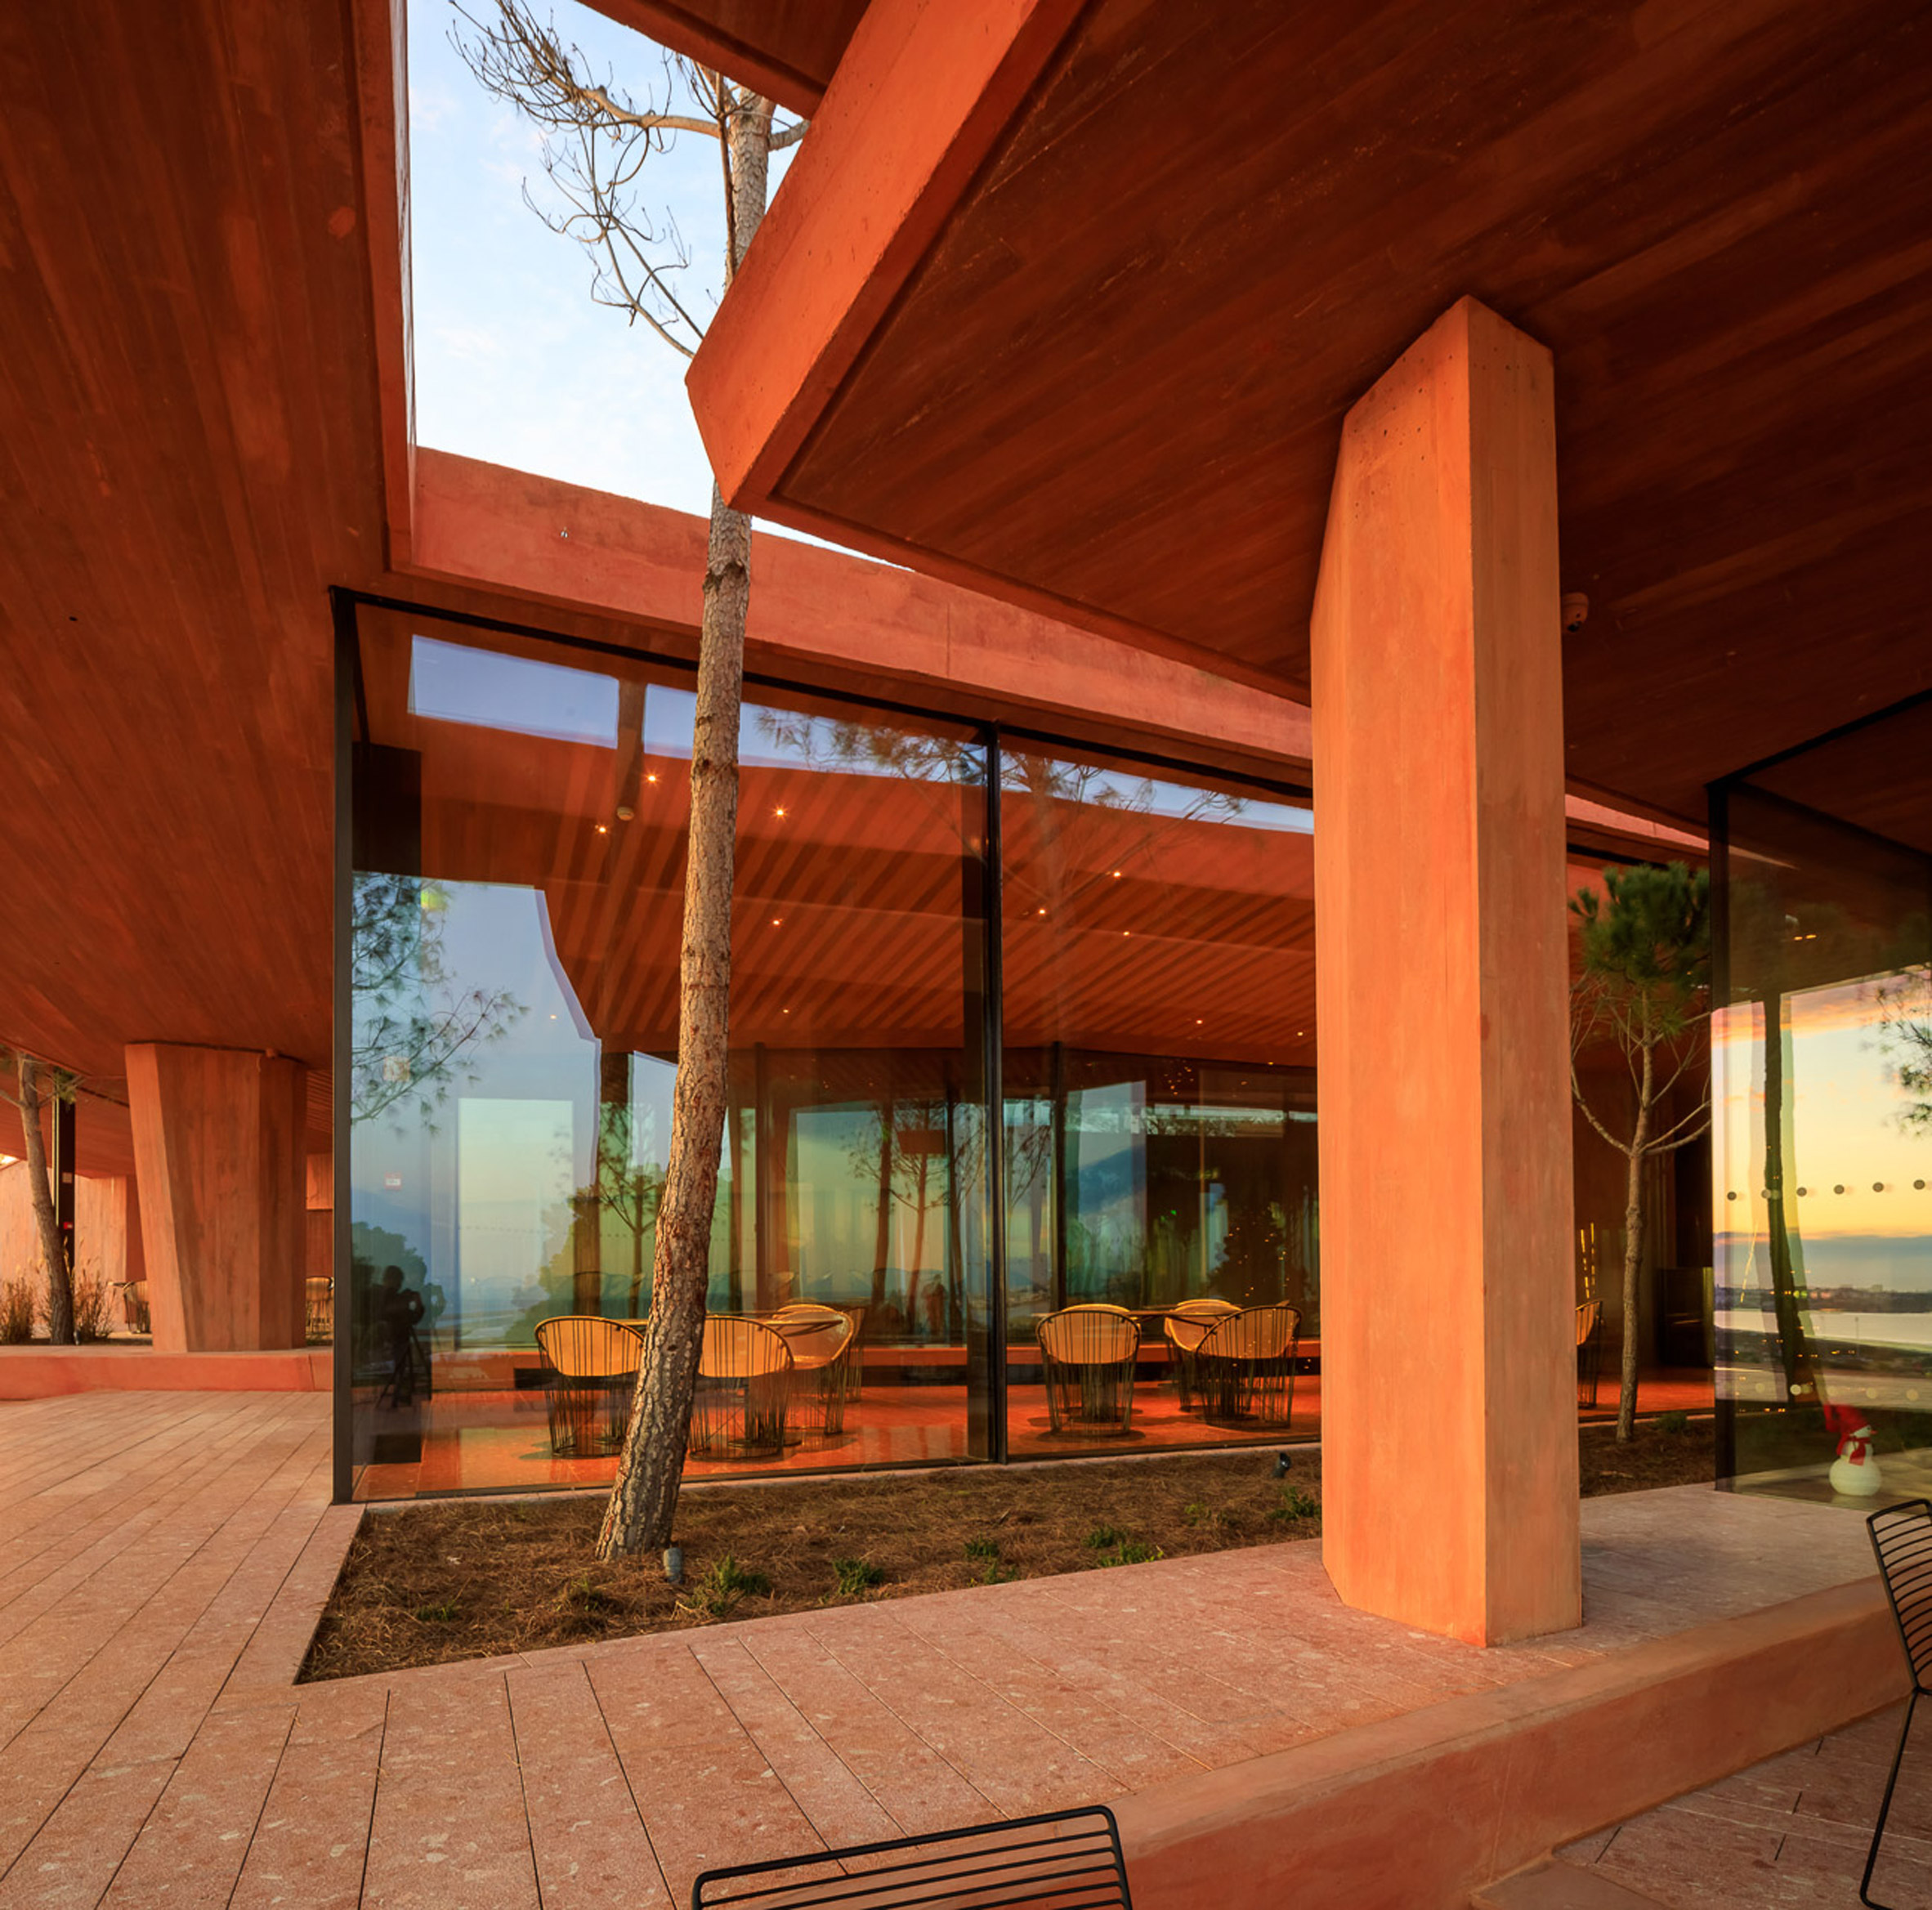 Terrace of Palmares Clubhouse by RCR Arquitectes